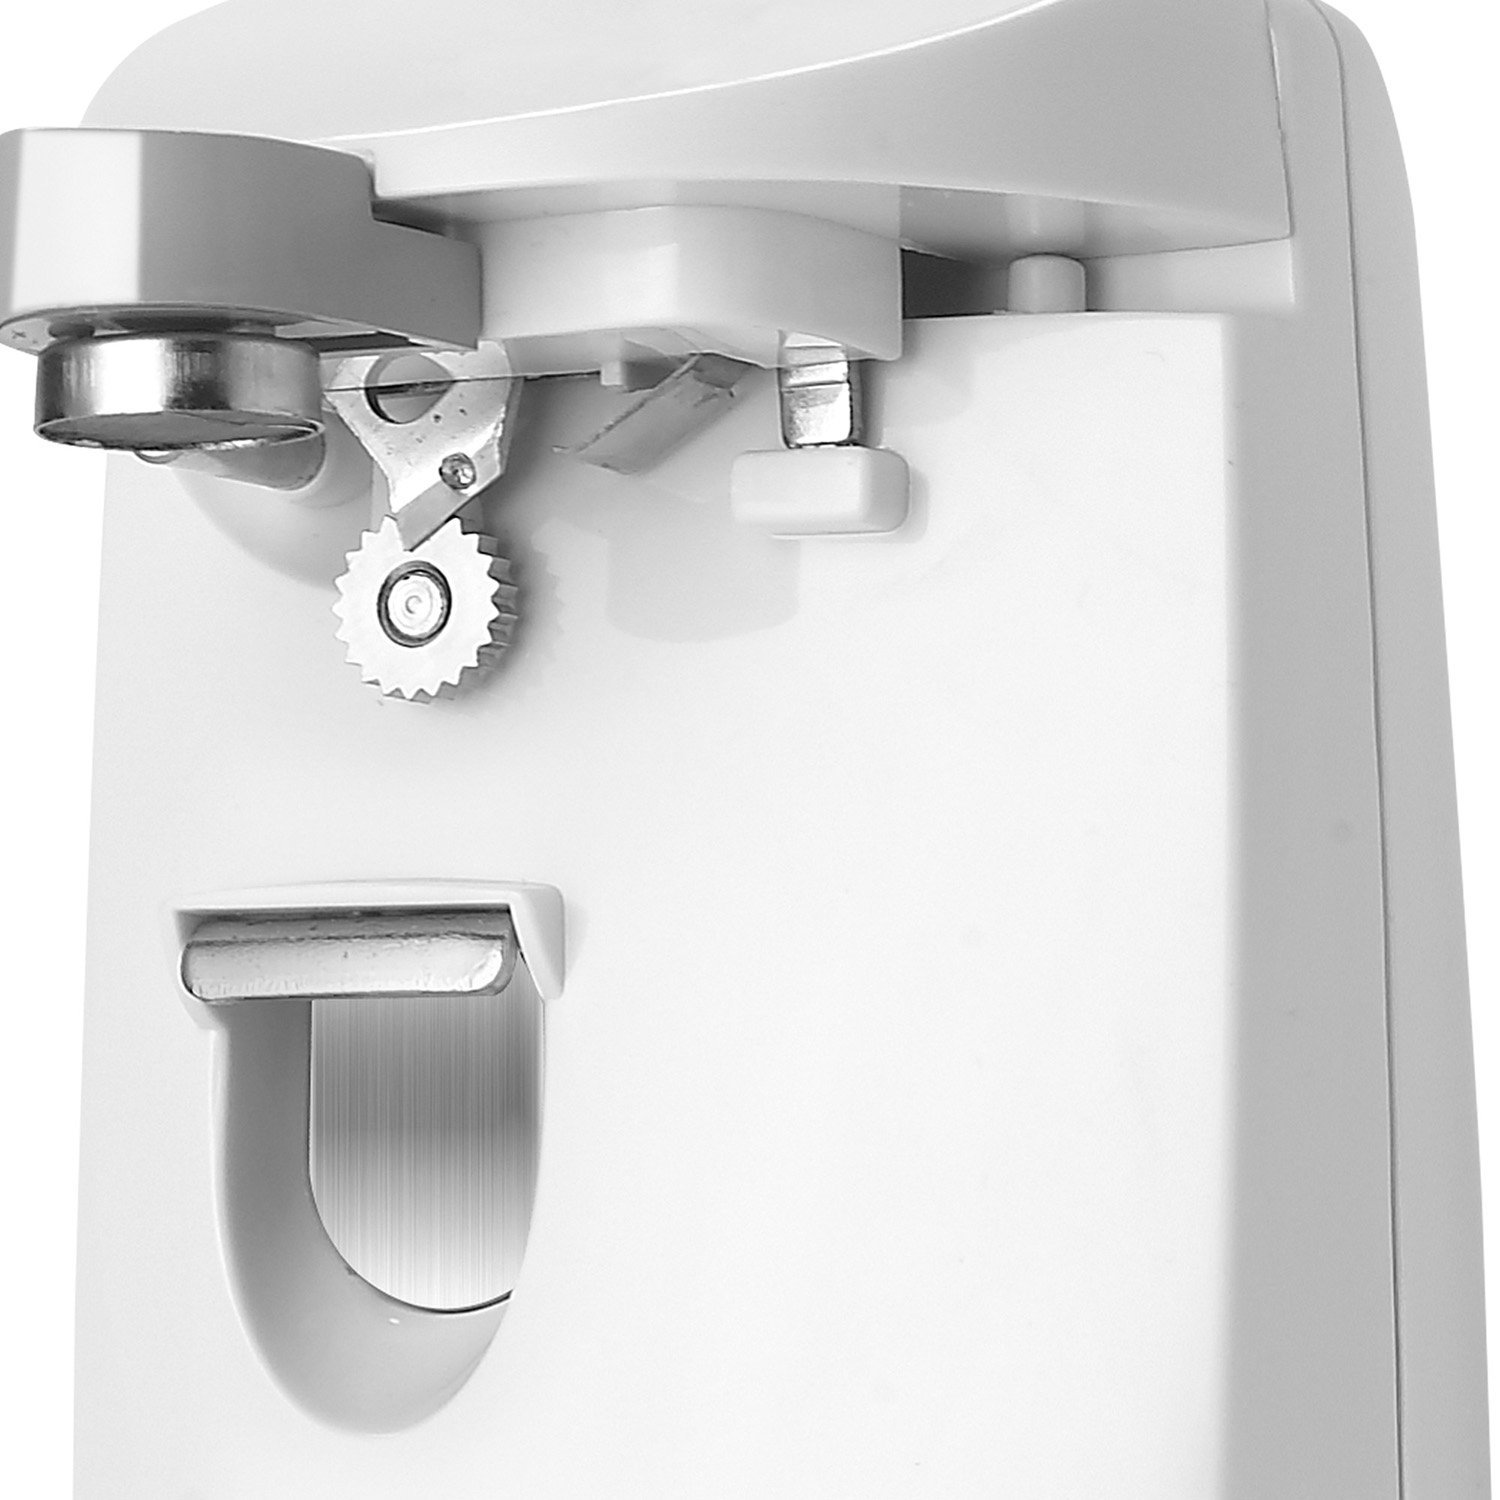 Black & Decker Extra-Tall Can Opener, White, EC475W-2